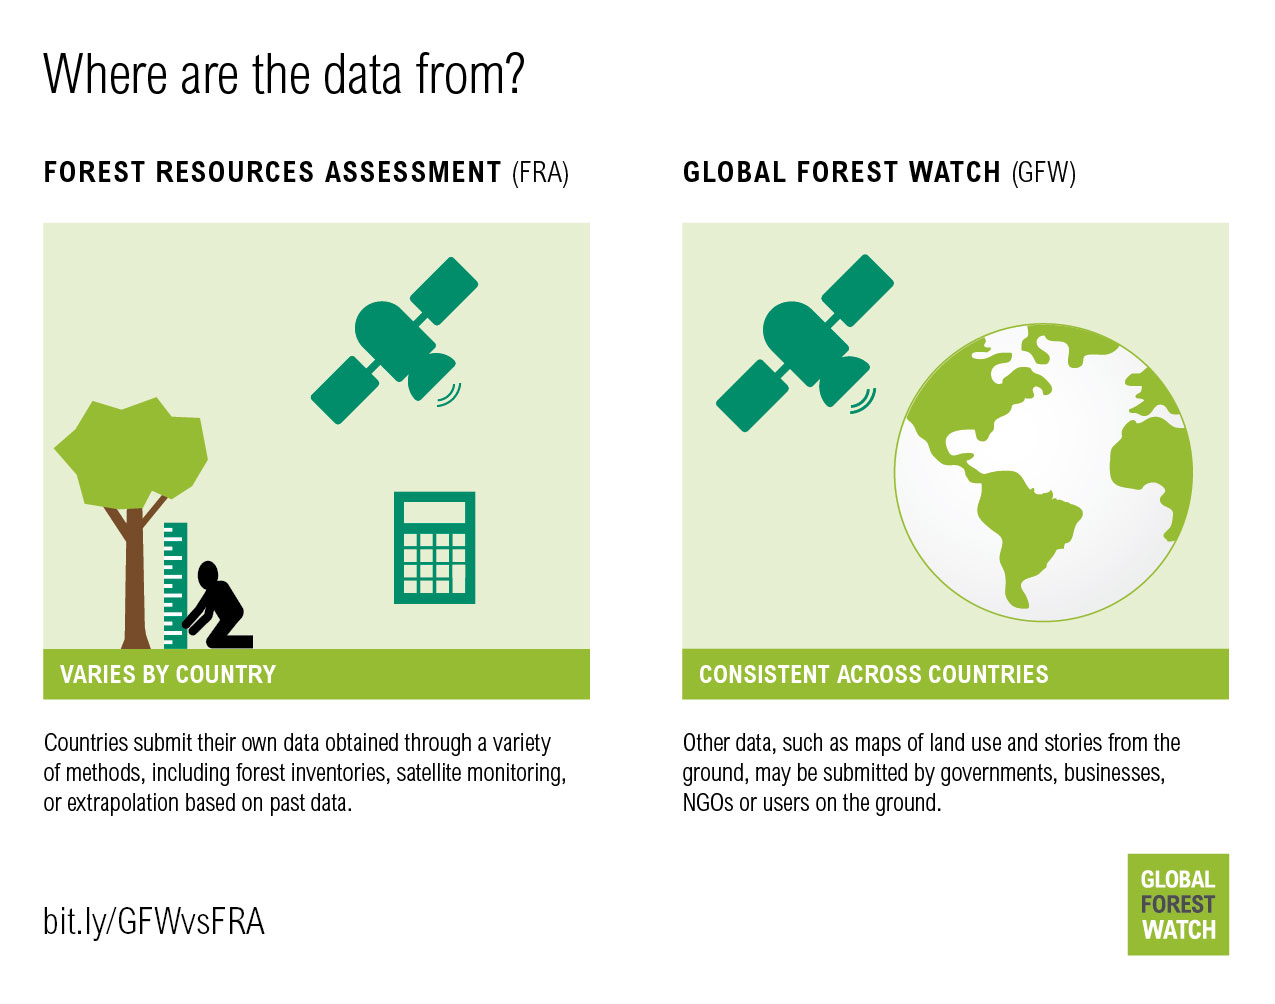 Where are the forest data from?